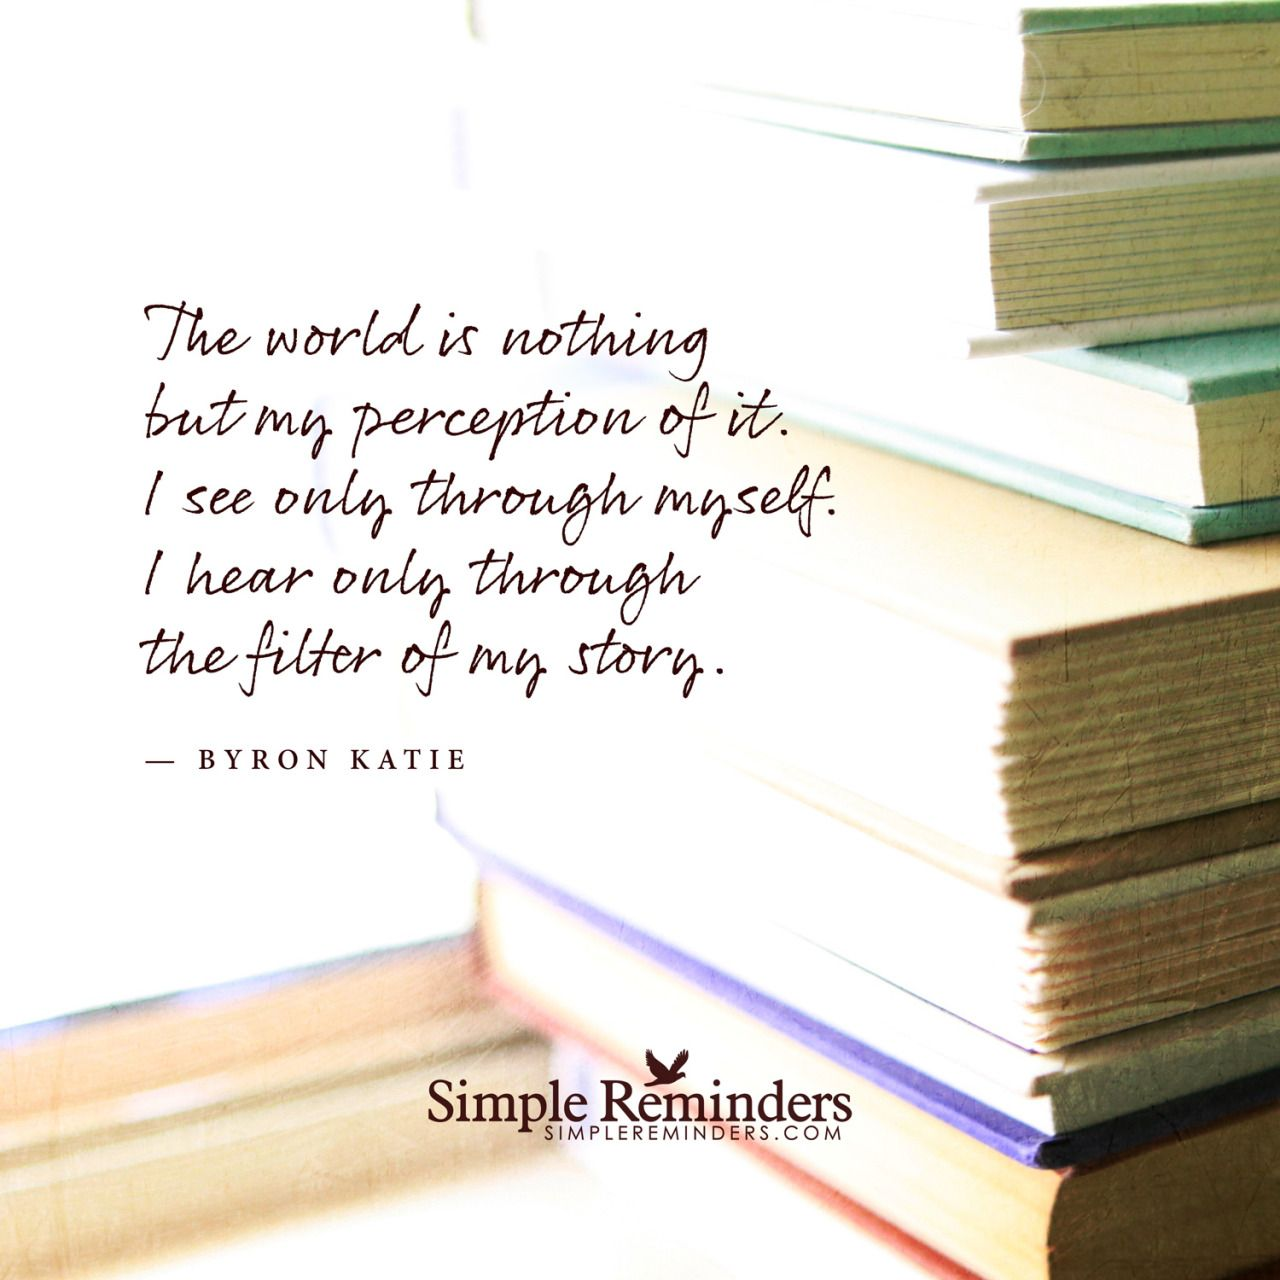 """The world is nothing but my perception of it. I see only through myself. I hear only through the filter of my story."" — Byron Katie"